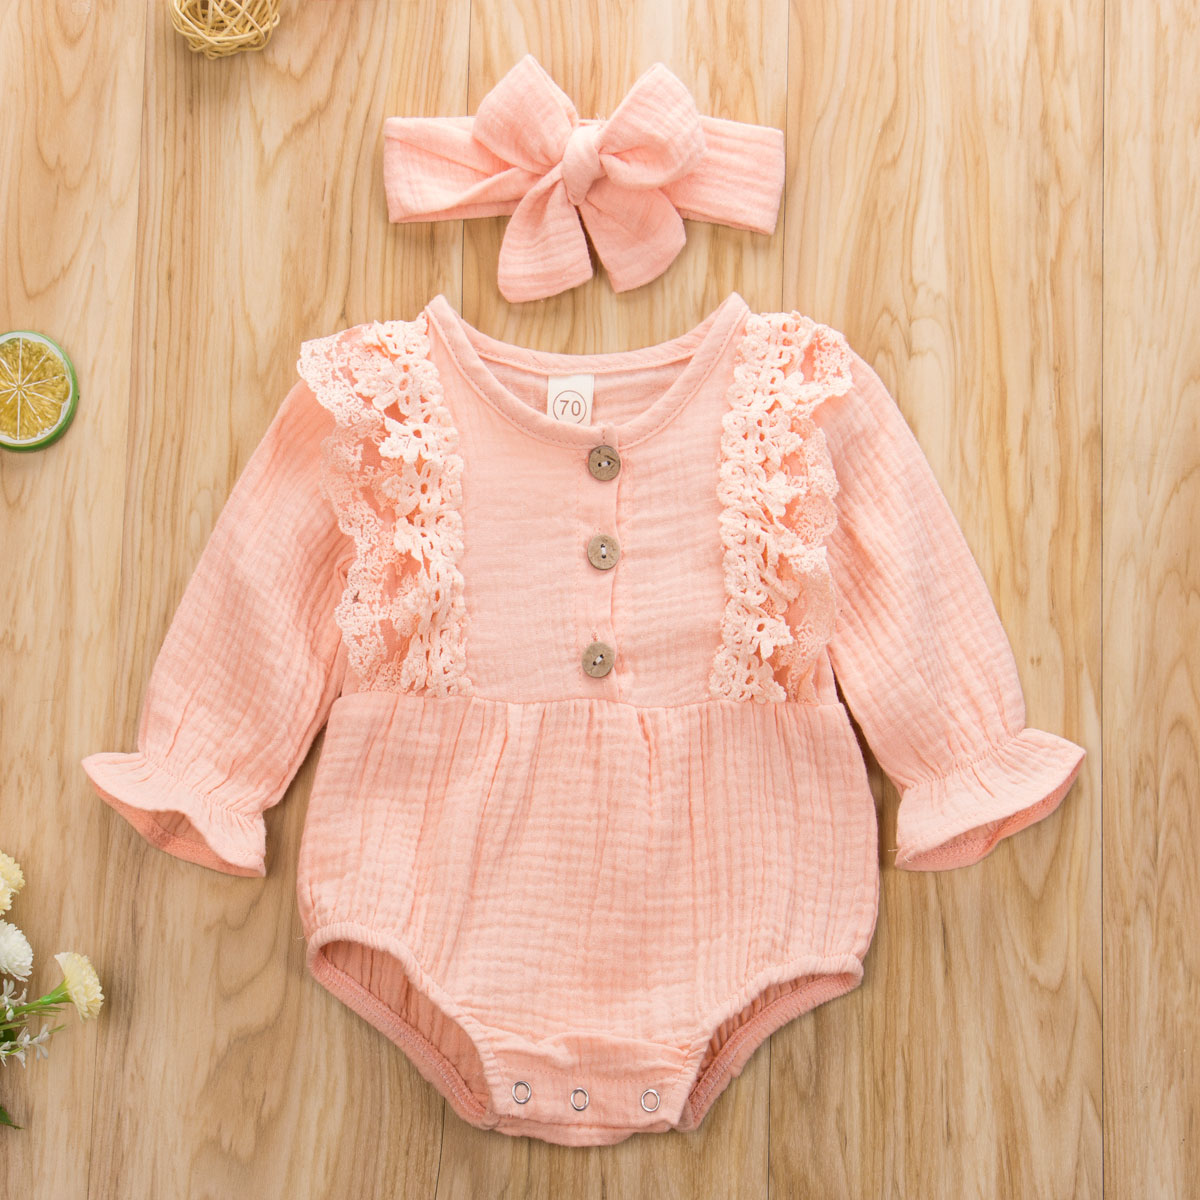 Pudcoco Newborn Baby Girl Clothes Solid Color Lace Ruffle Long Sleeve Kinnted Cotton Romper Jumpsuit Headband 2Pcs Outfits Set